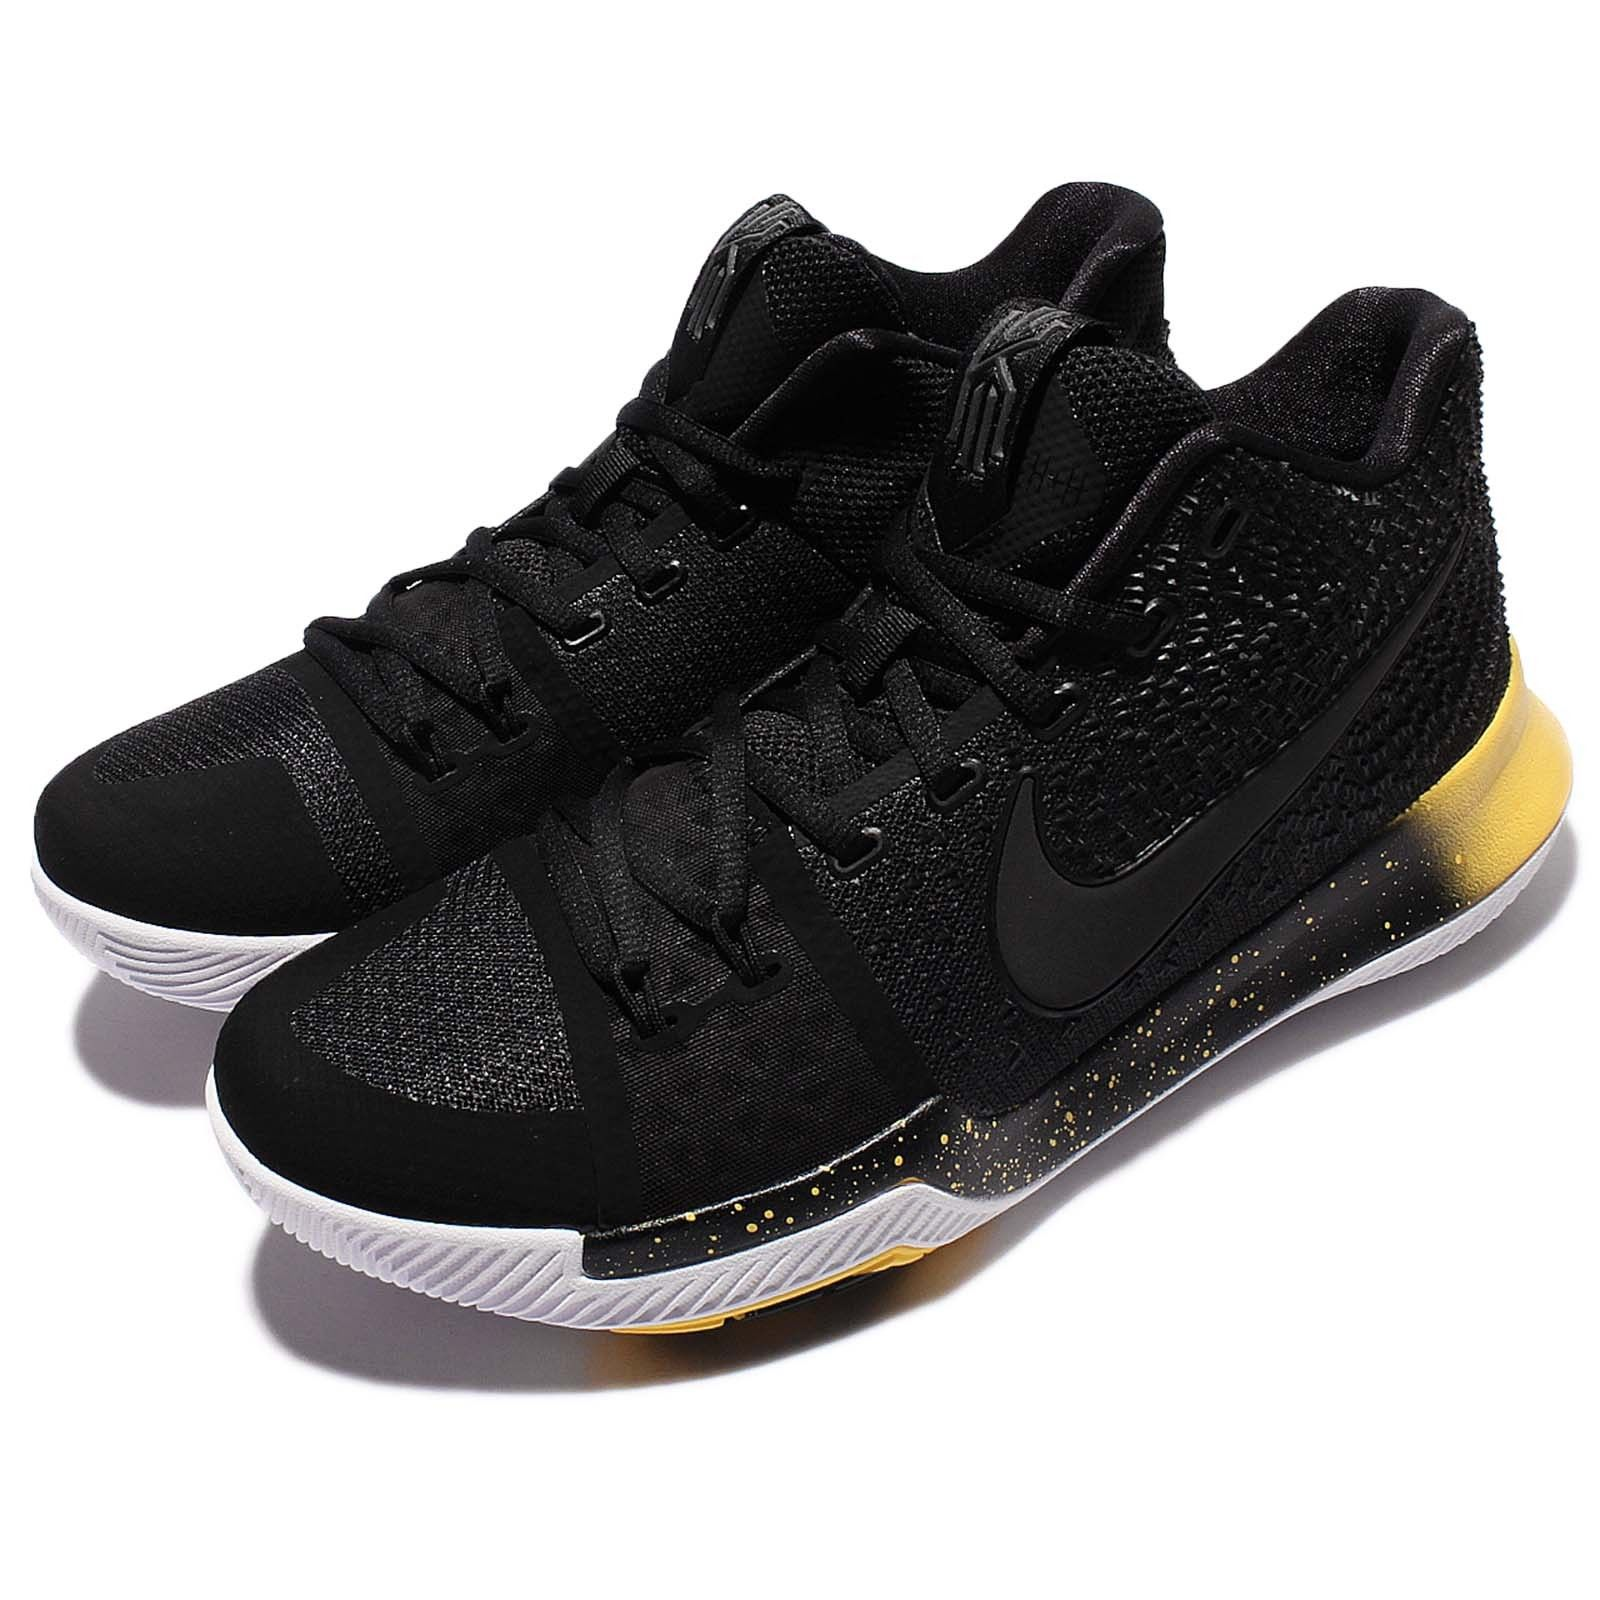 wholesale dealer 71301 1ef44 The Nike Kyrie 3 Black/Yellow Available Early - WearTesters